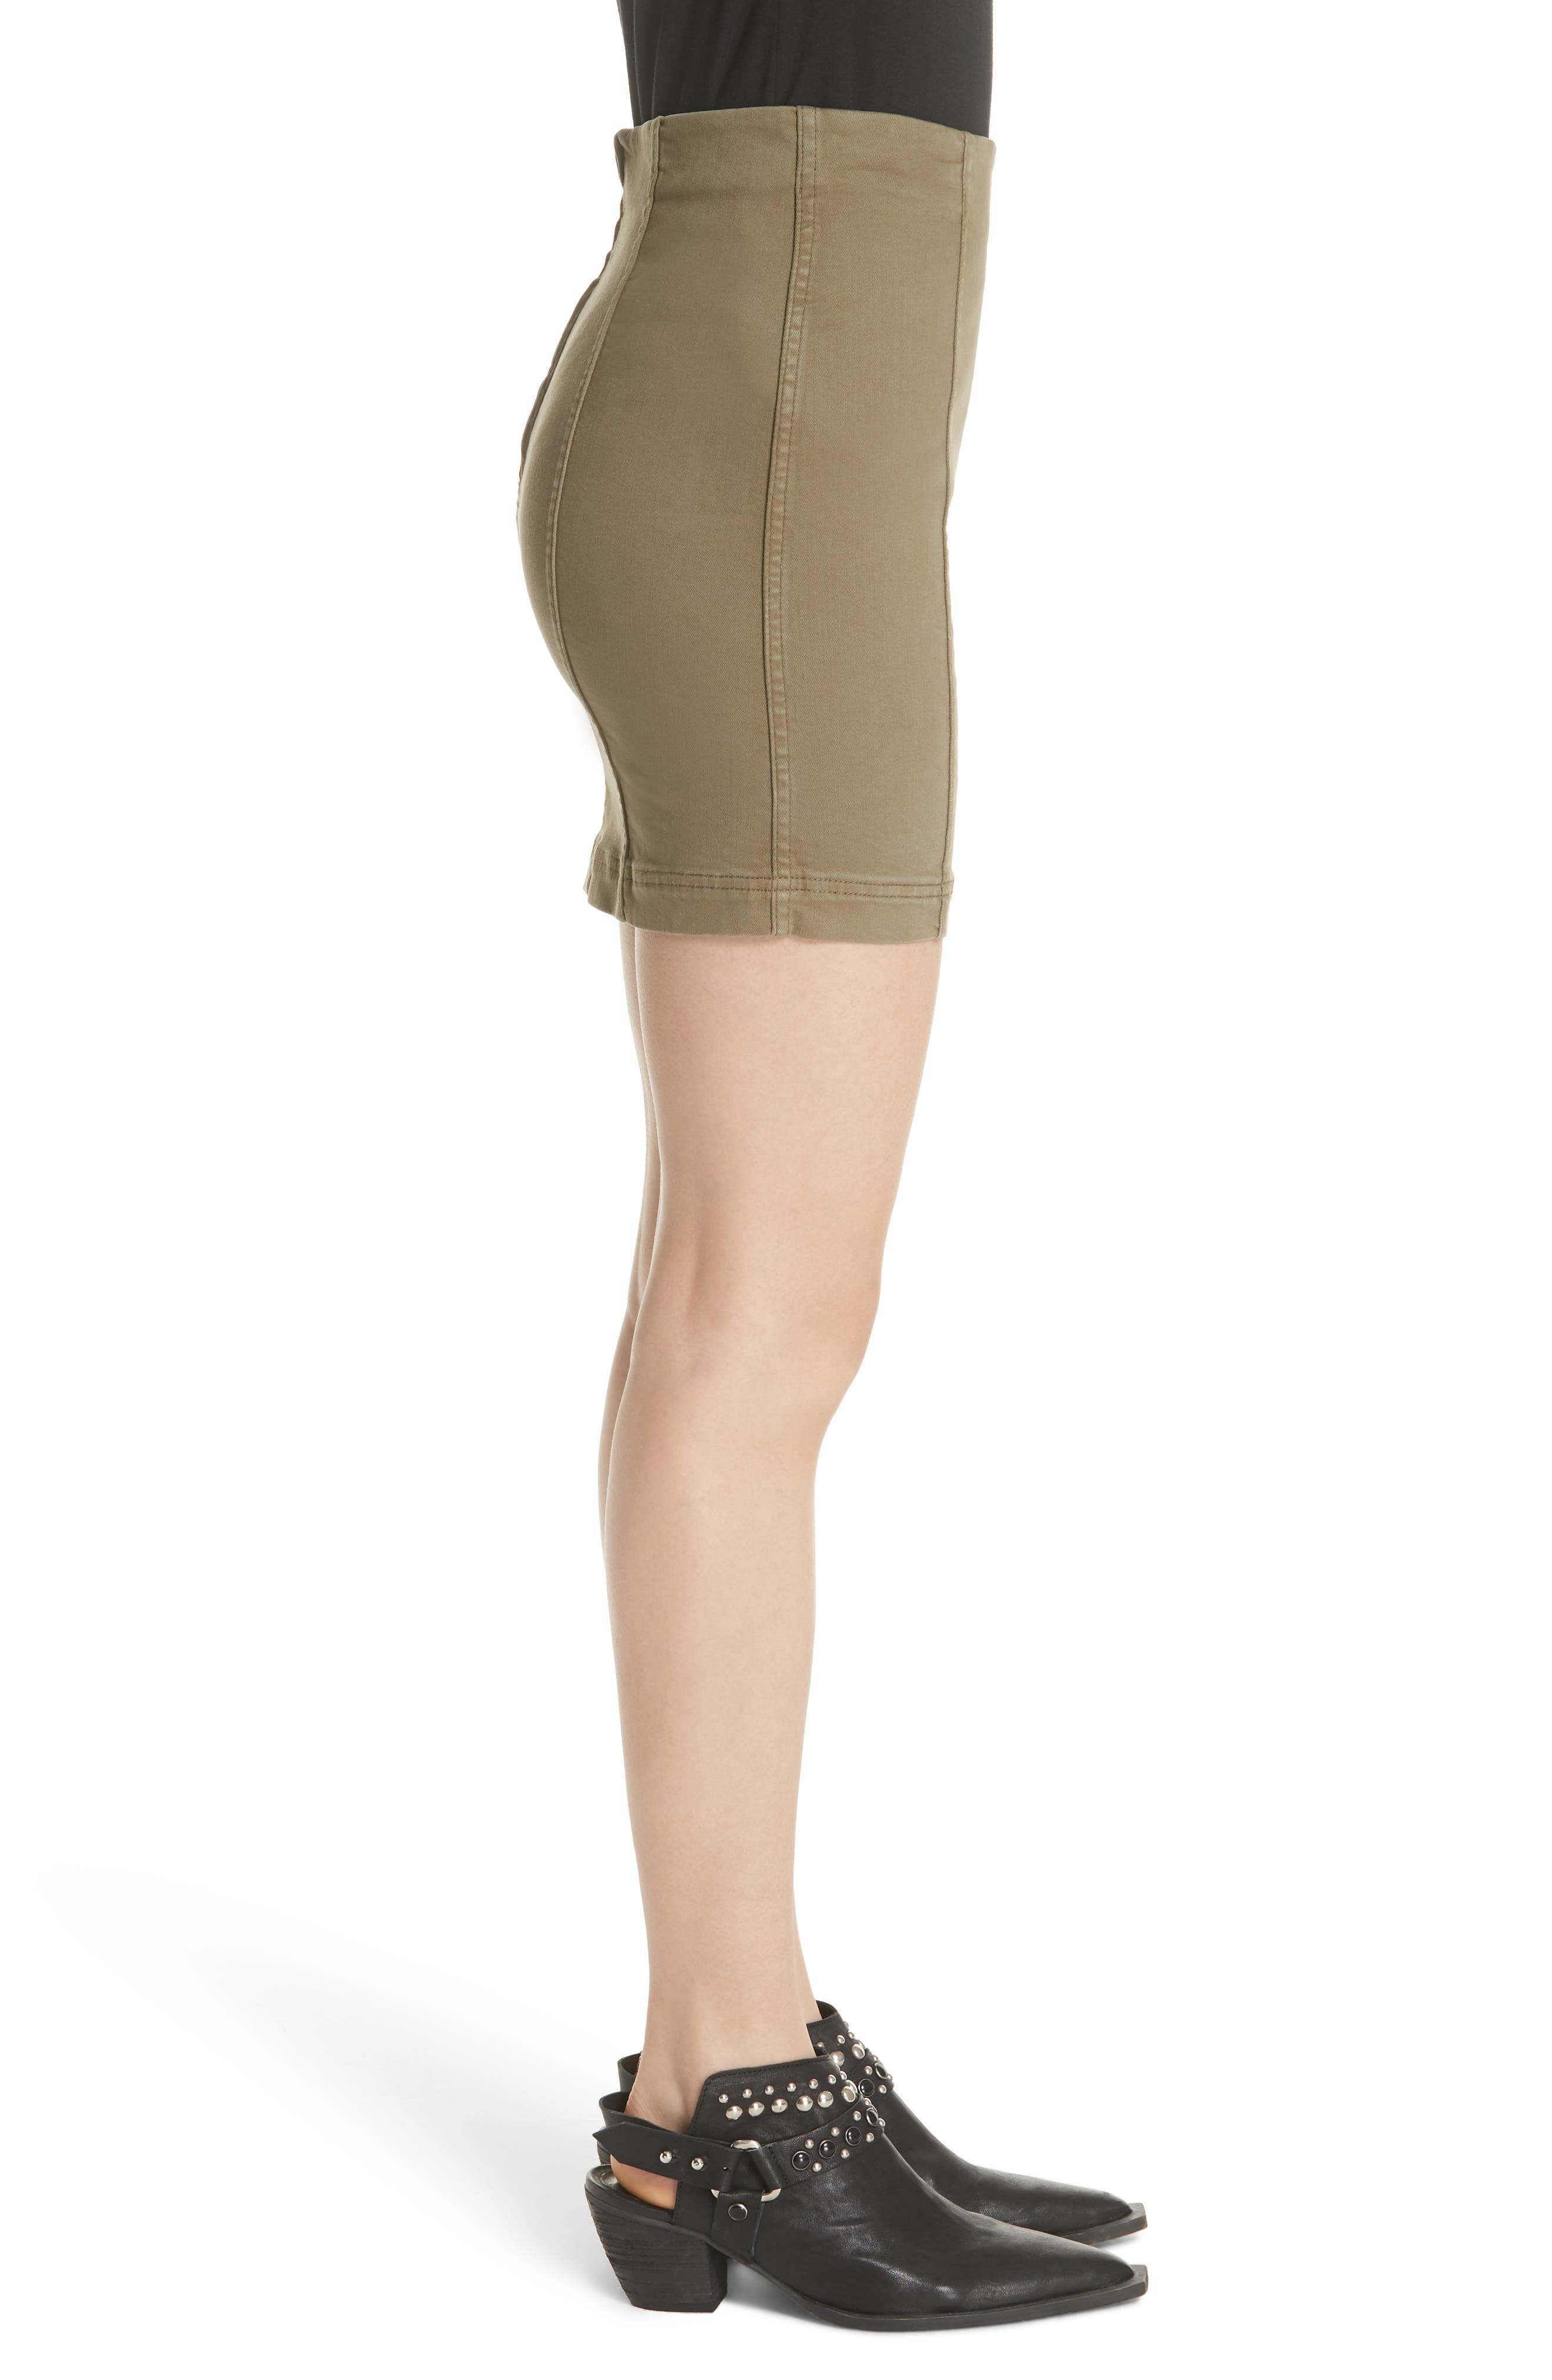 FREE PEOPLE, We the Free by Free People Modern Miniskirt, Alternate thumbnail 3, color, ARMY